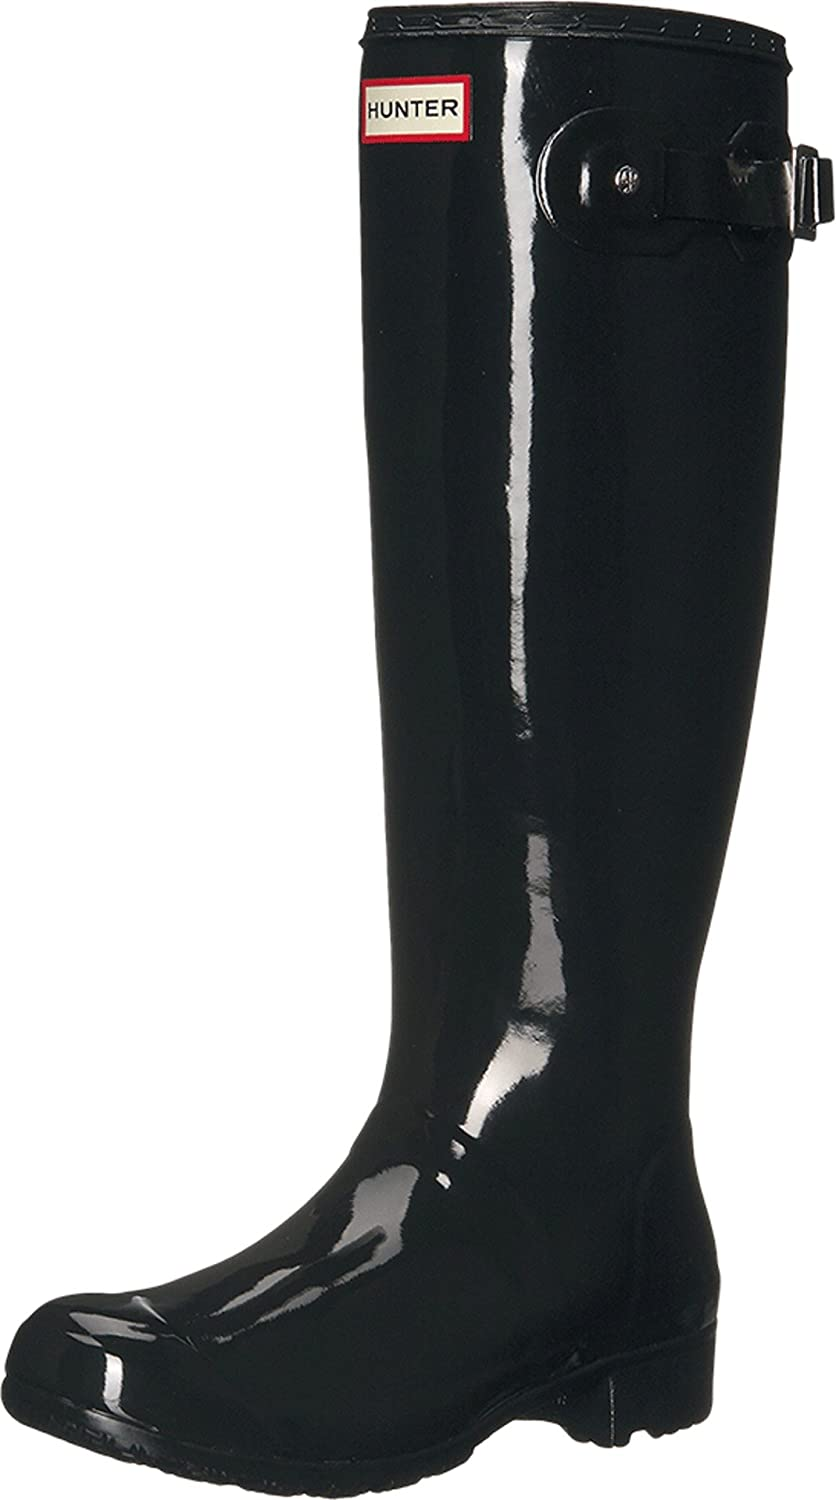 Hunter Womens Original Tour Gloss Packable Rain Boot B00PV0V4HW 6 B(M) US|Black